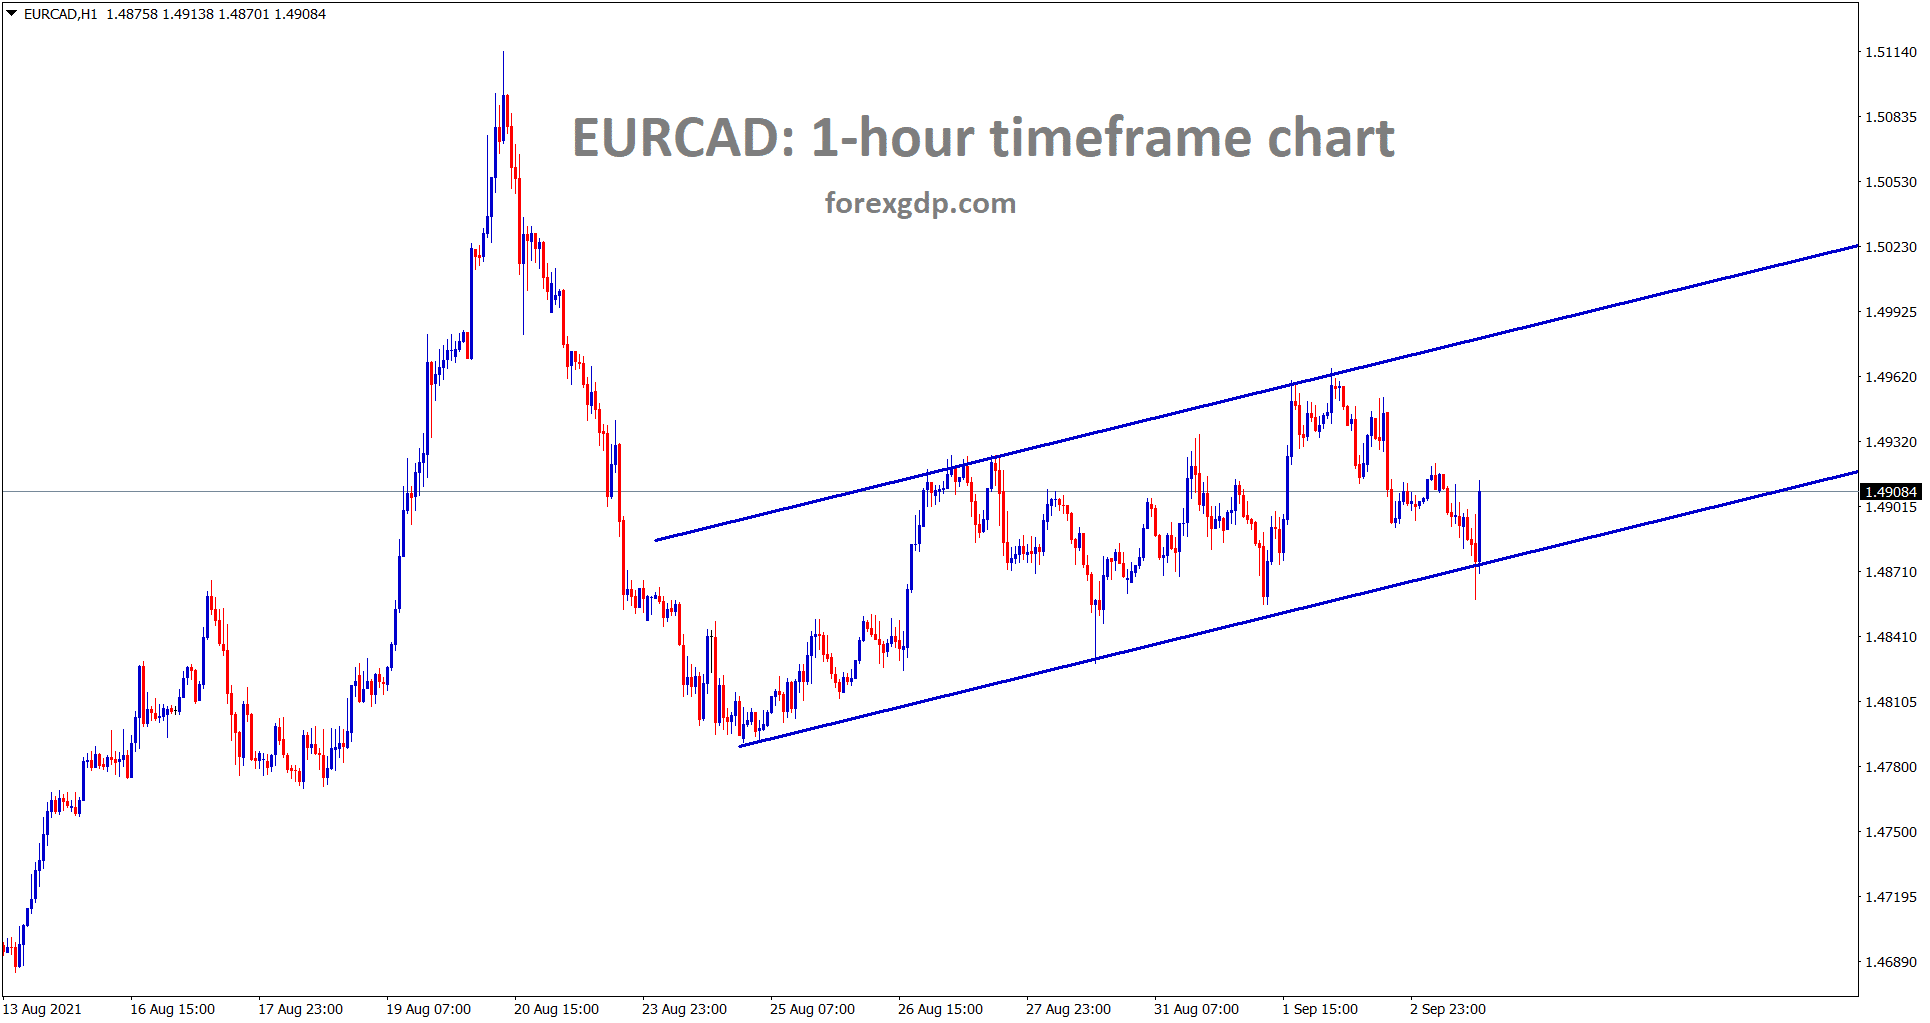 EURCAD is moving in an ascending channel pattern